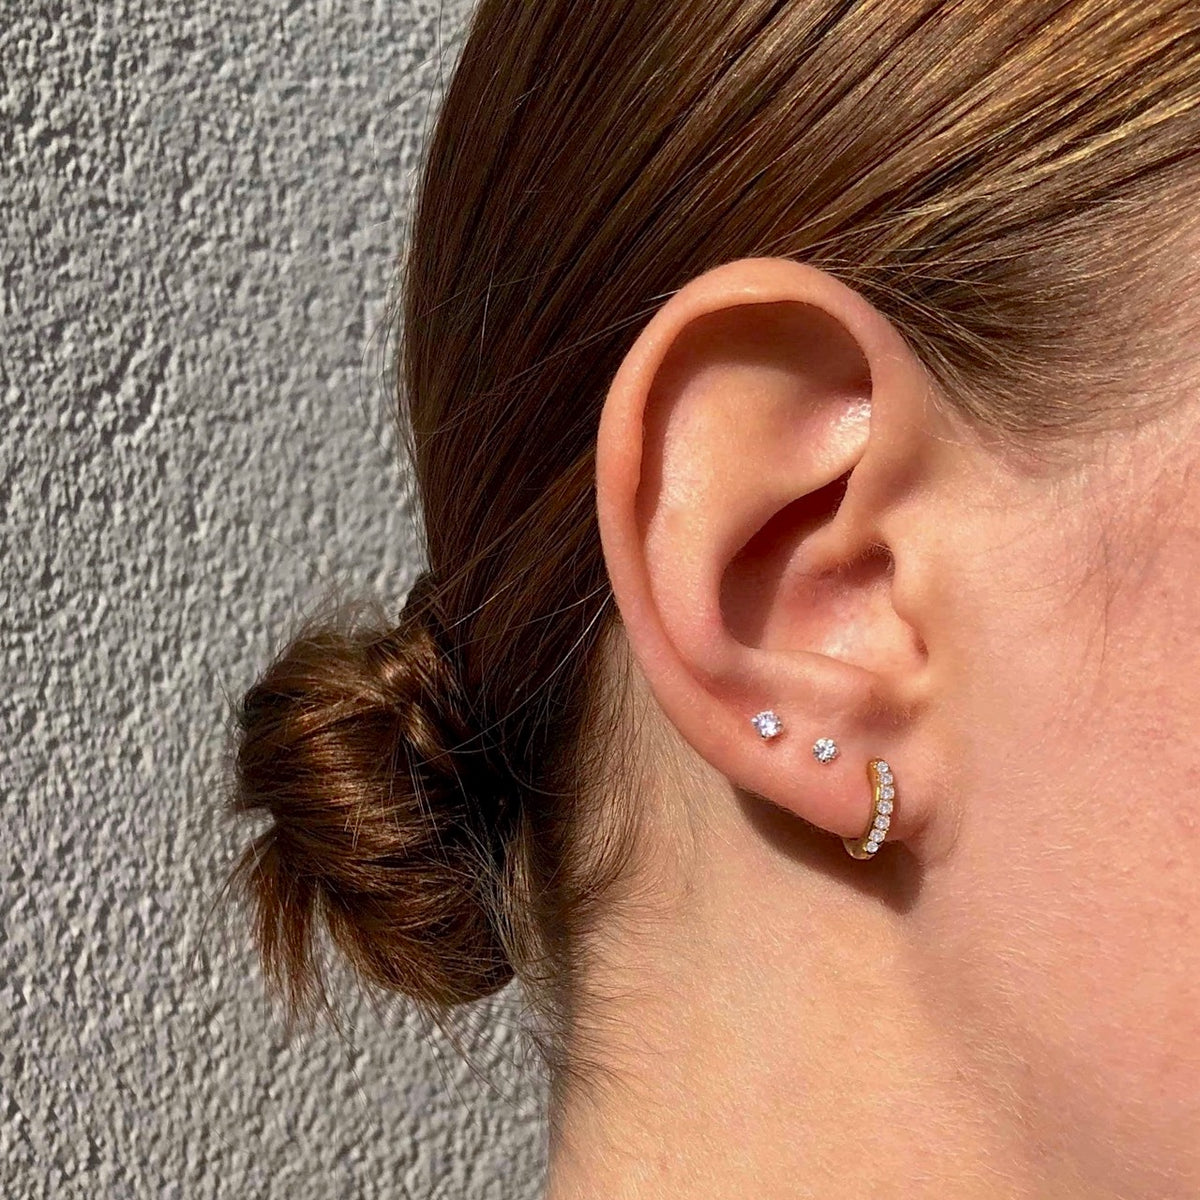 Details about  /Dainty Land Snail Stud 925 Sterling Silver Push Back Earrings